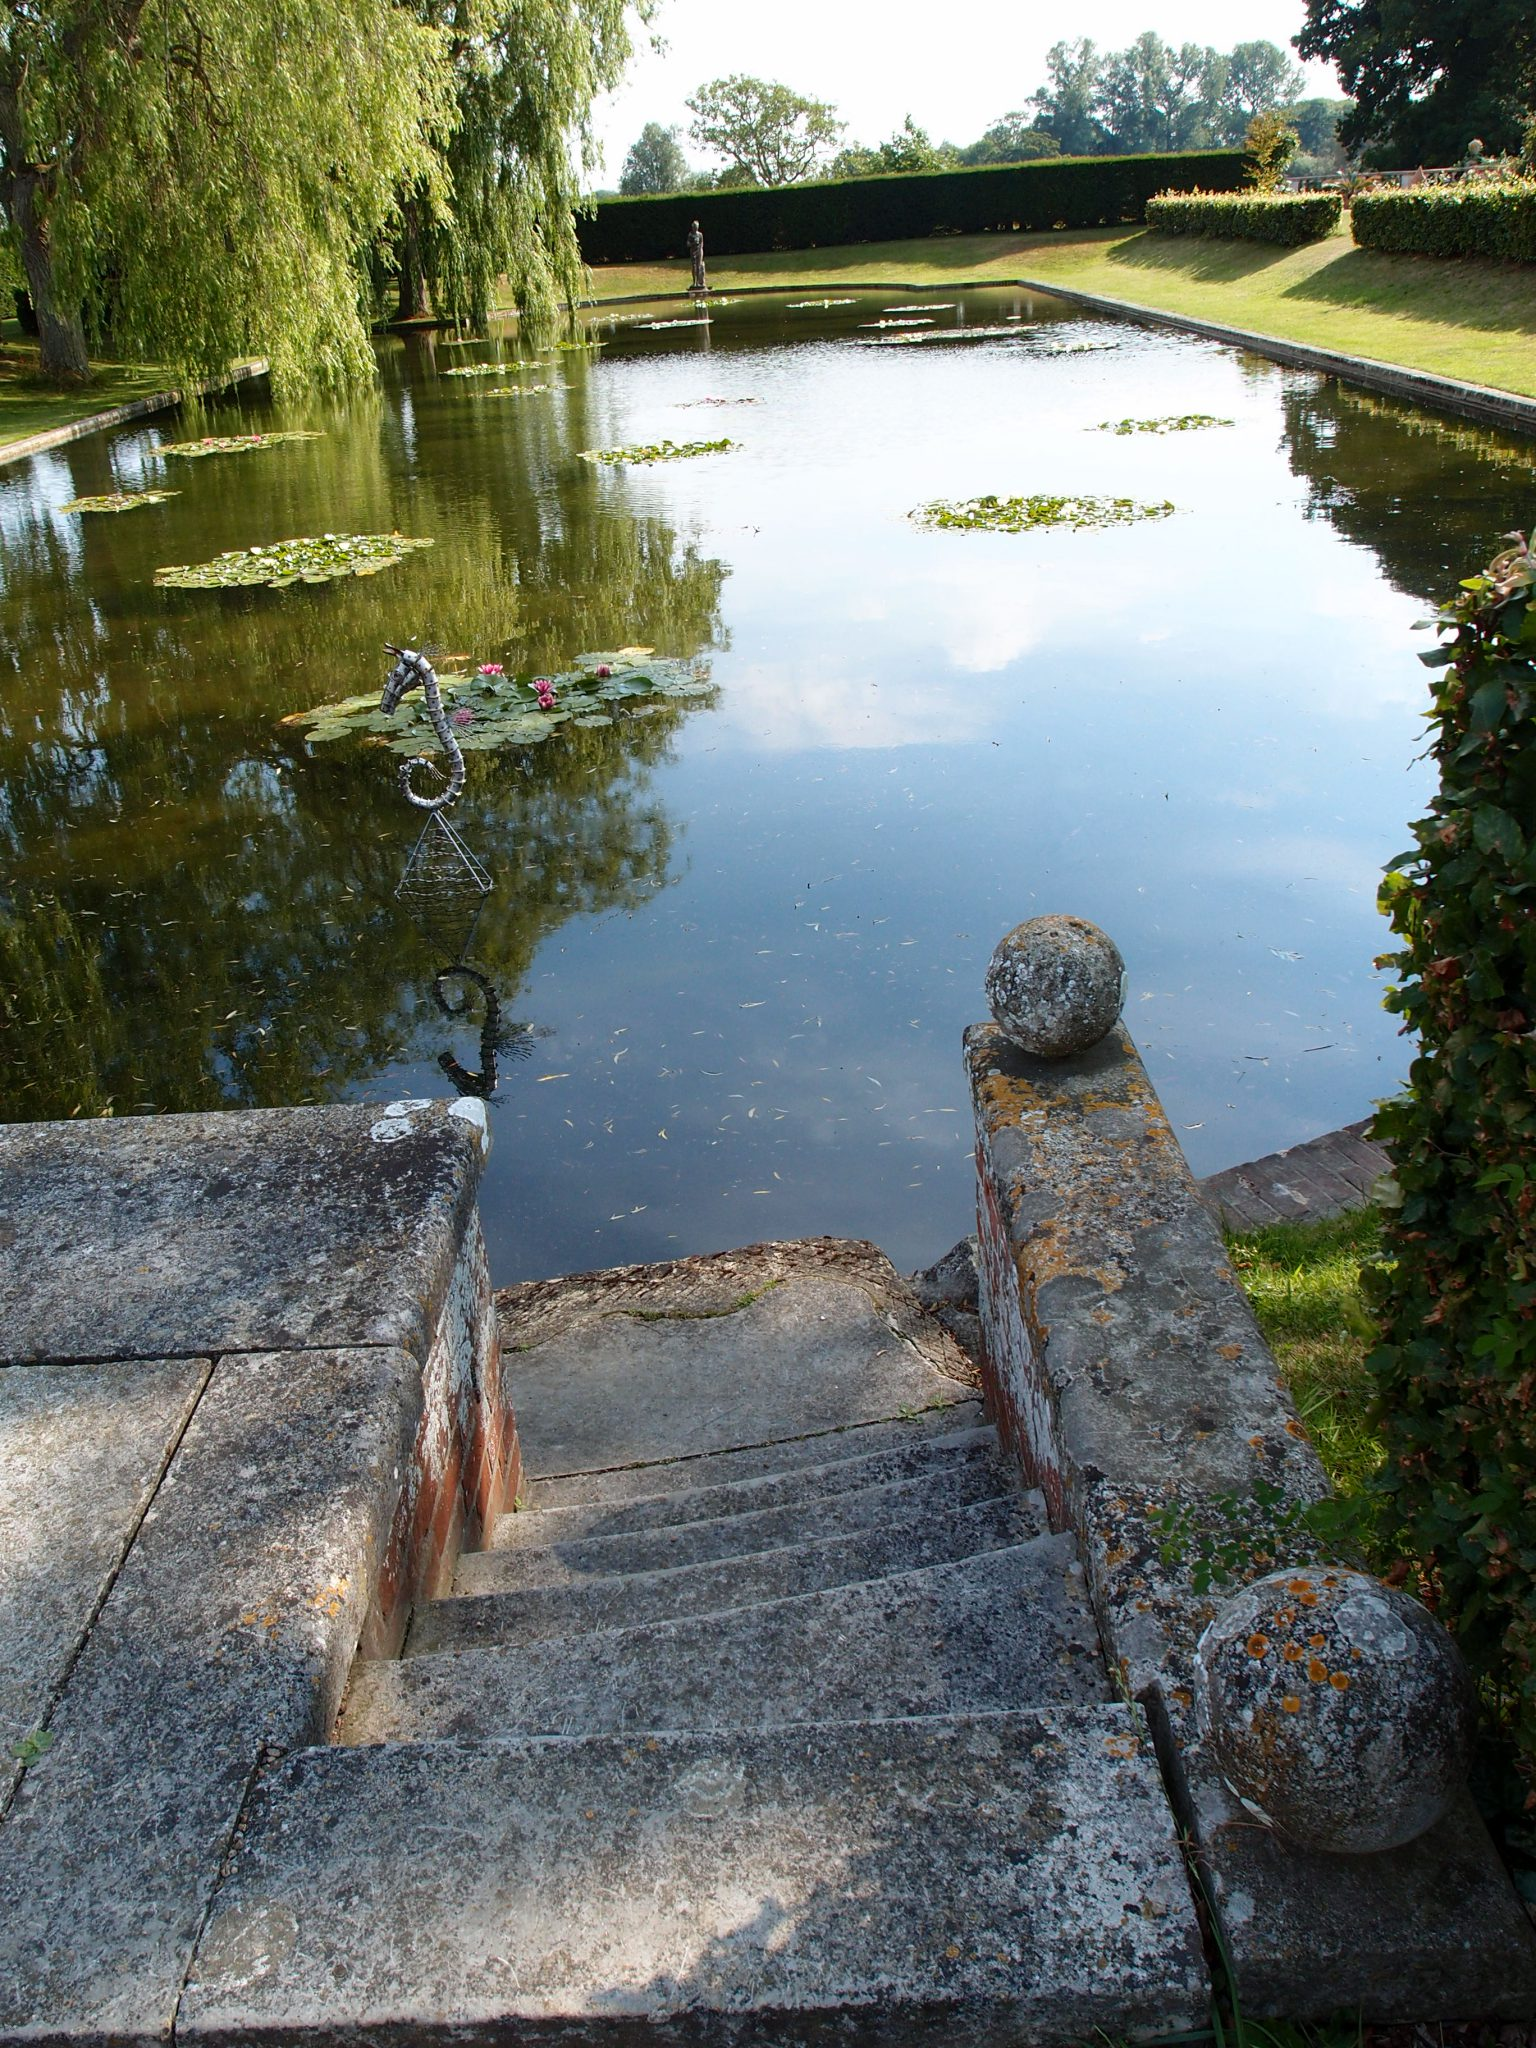 Steps down to the Lily Pond